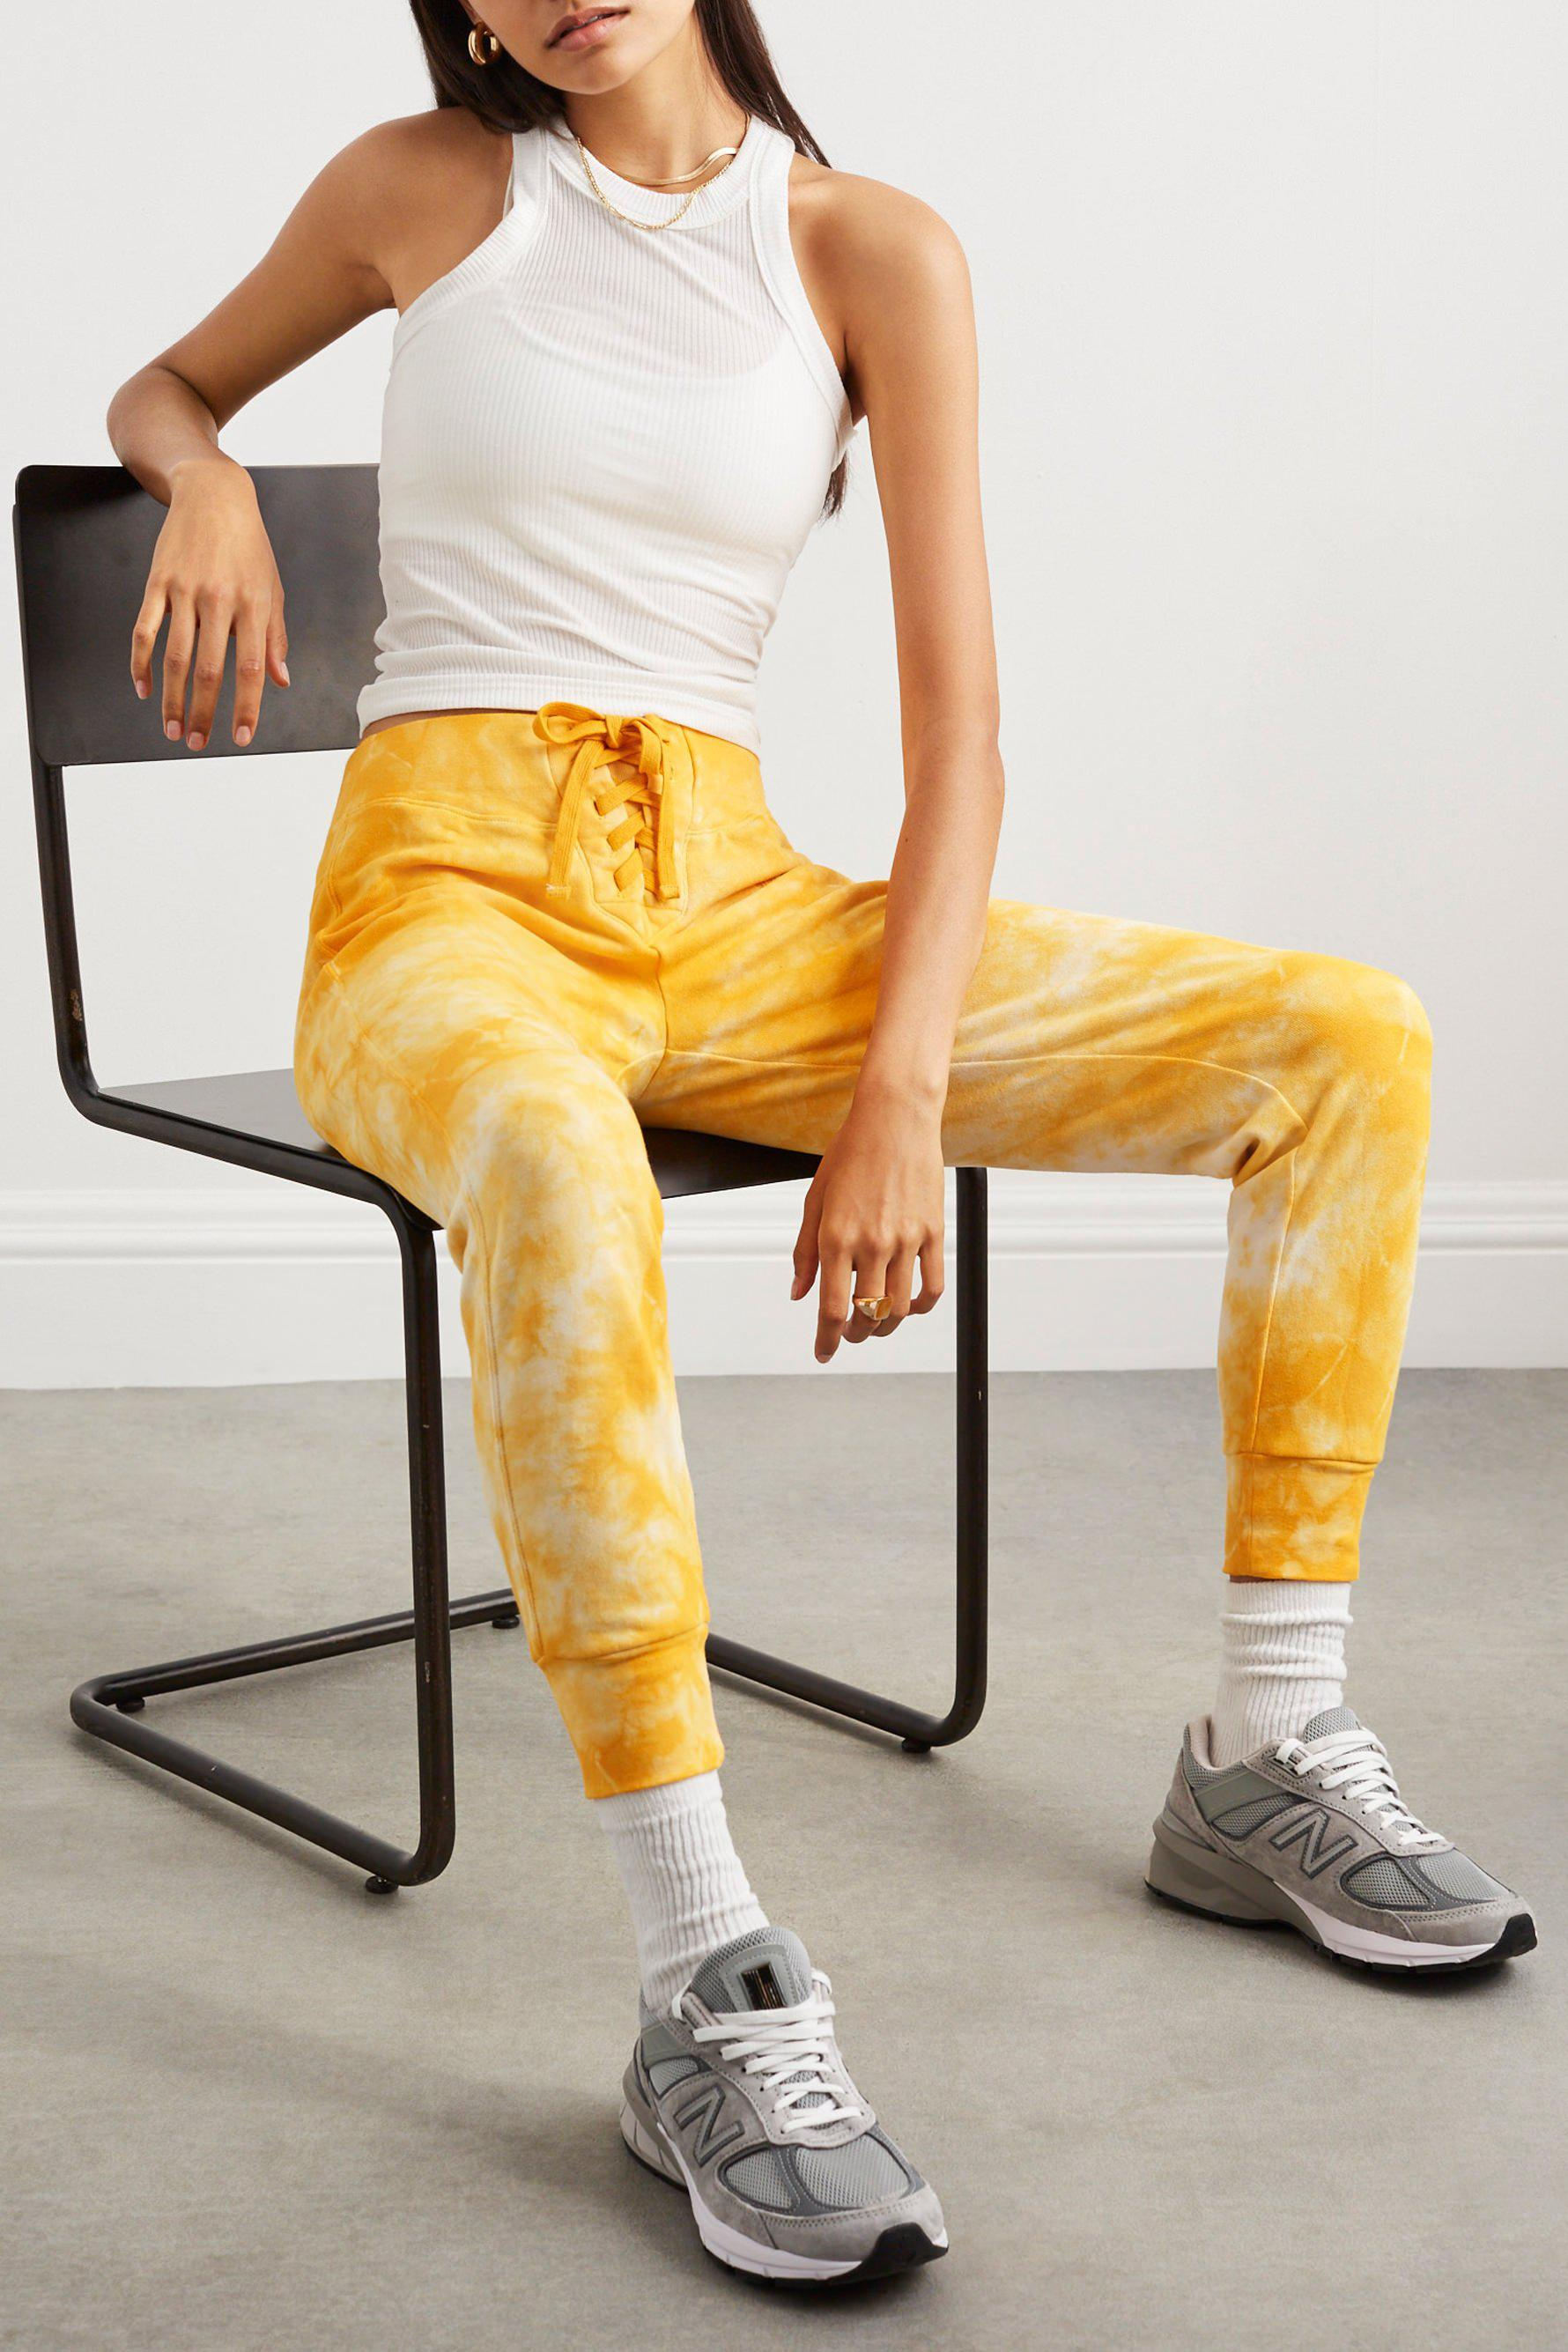 The Ecosoft Tie Up Jogger 2